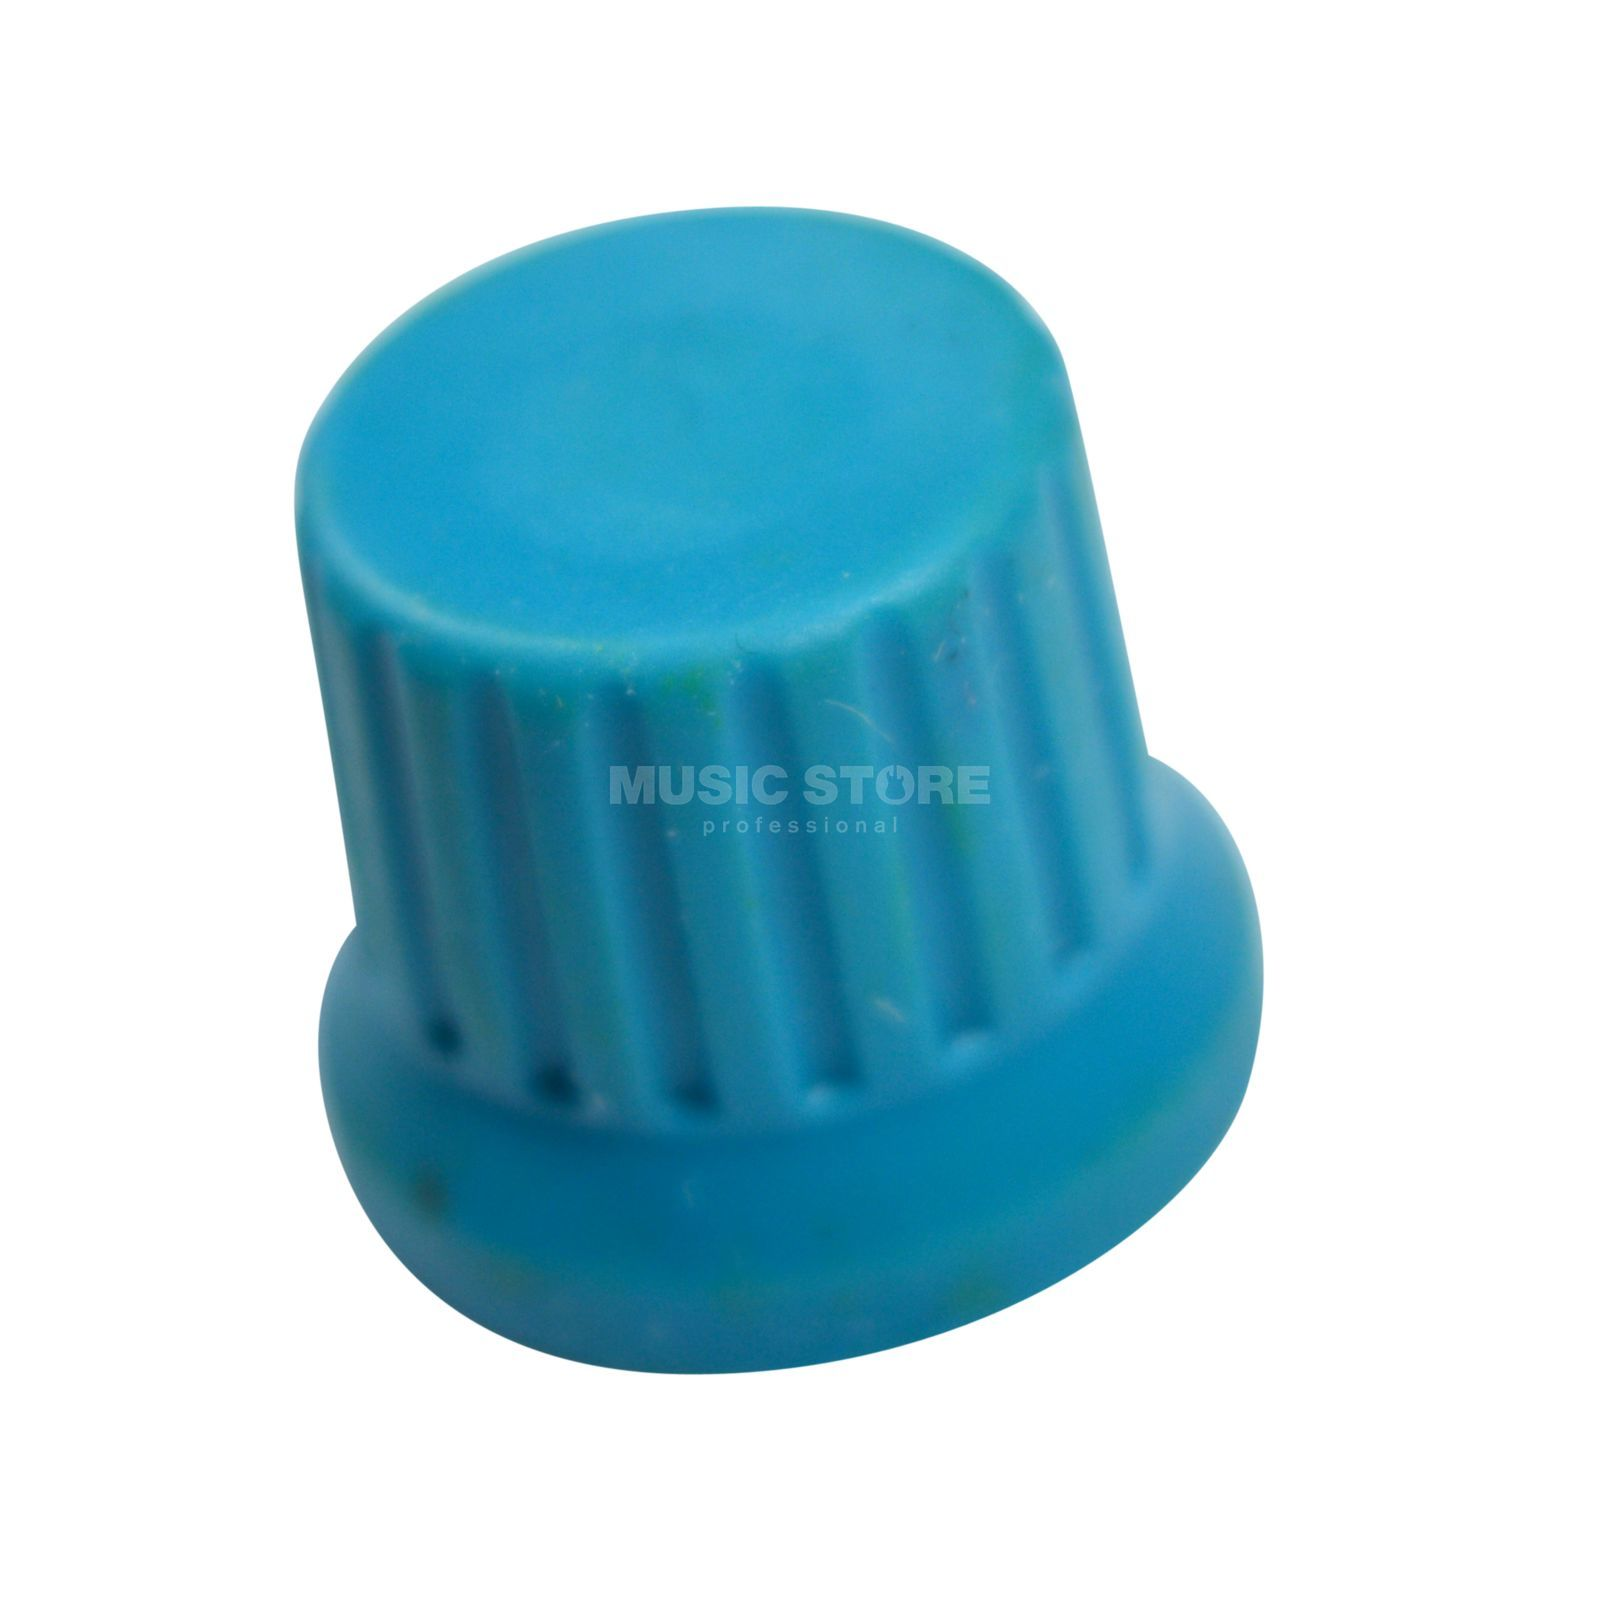 DJ TECHTOOLS Chroma Caps Encor Knob blue Product Image